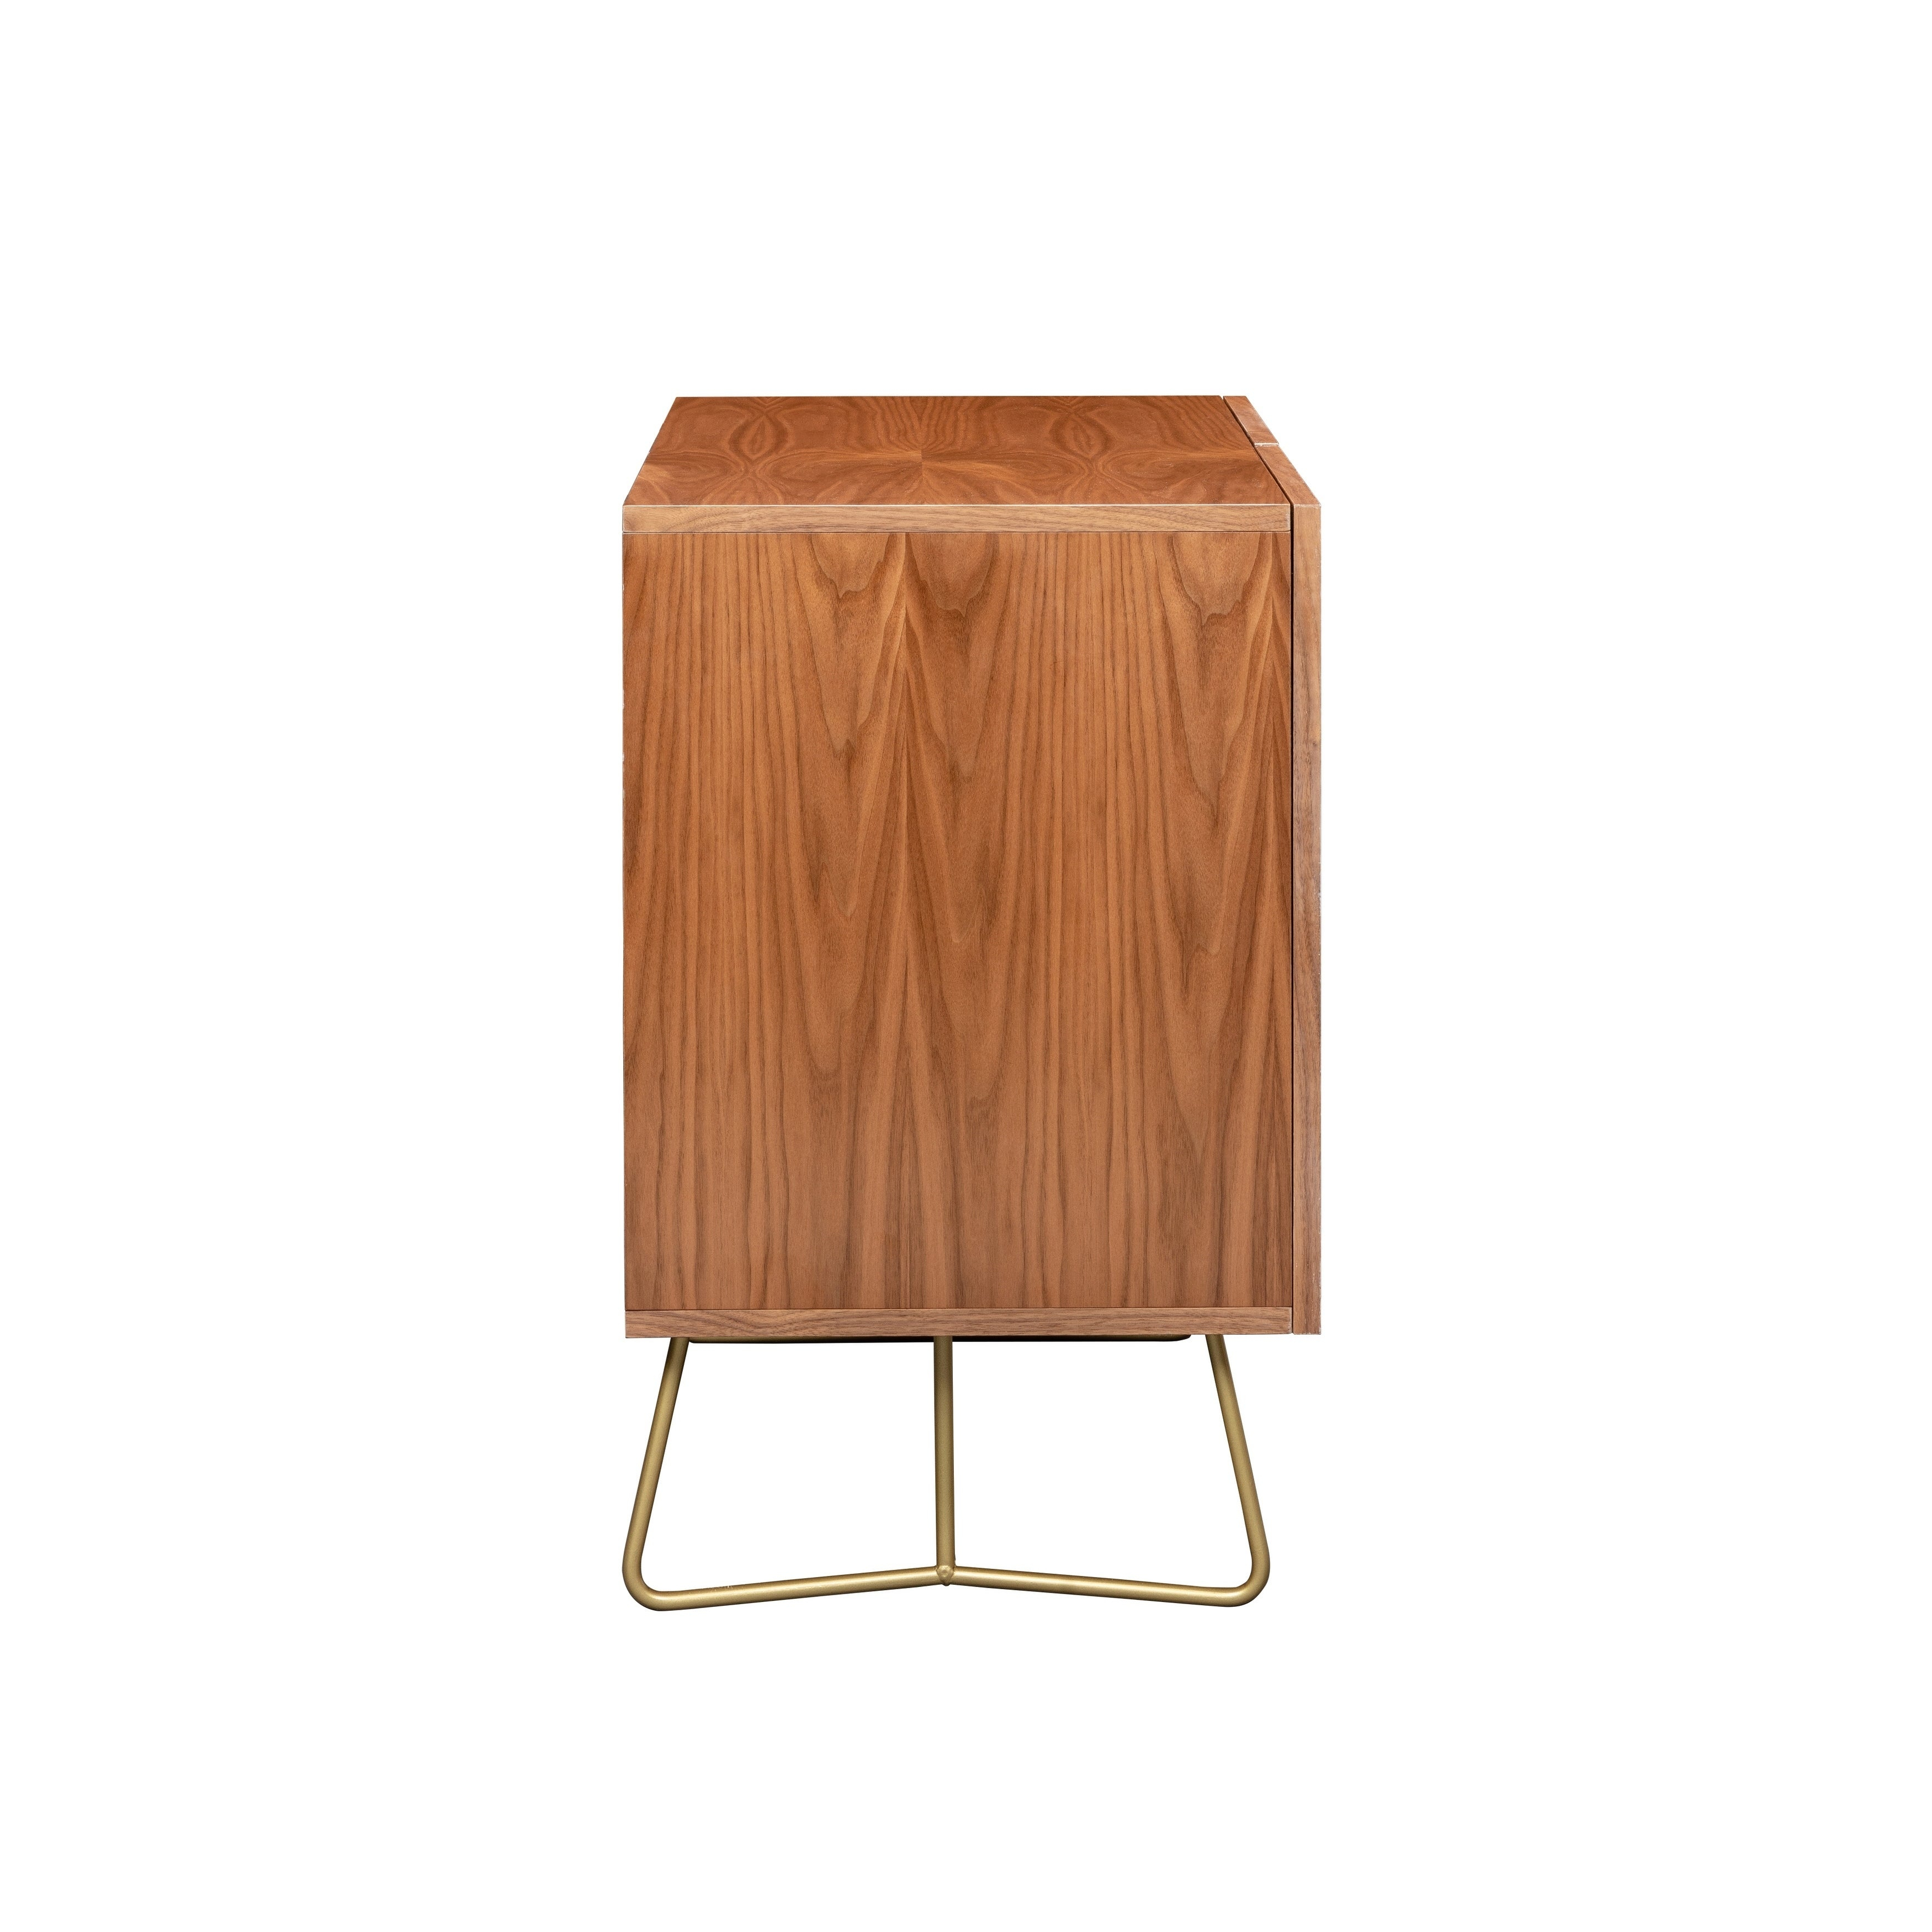 Deny Designs Multi Colored Geometric Shapes Credenza (Birch Or Walnut, 3  Leg Options) pertaining to Multi Colored Geometric Shapes Credenzas (Image 14 of 30)